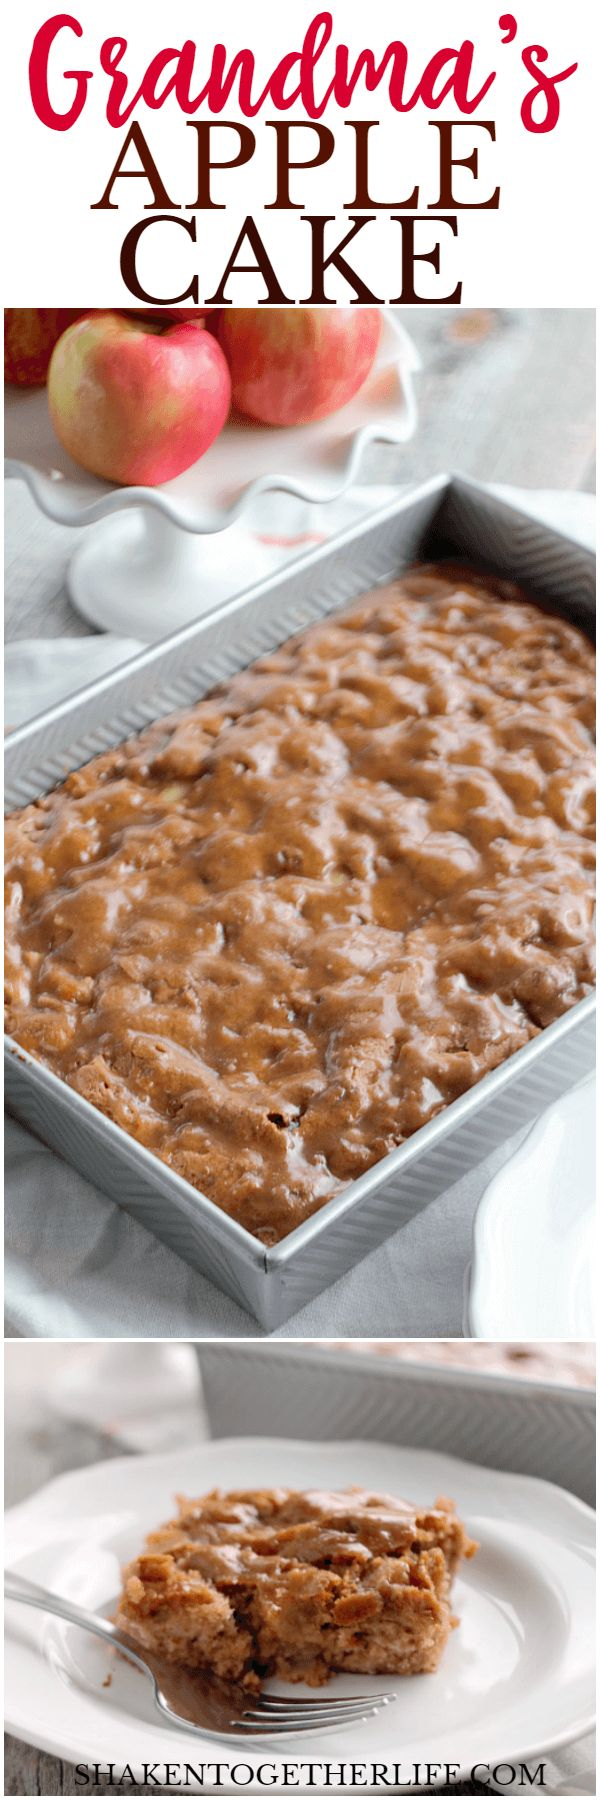 My Grandma's Apple Cake with Cinnamon Crackle Glaze is tender, studded with fruit and nuts and is topped with the most delicious cinnamon glaze!